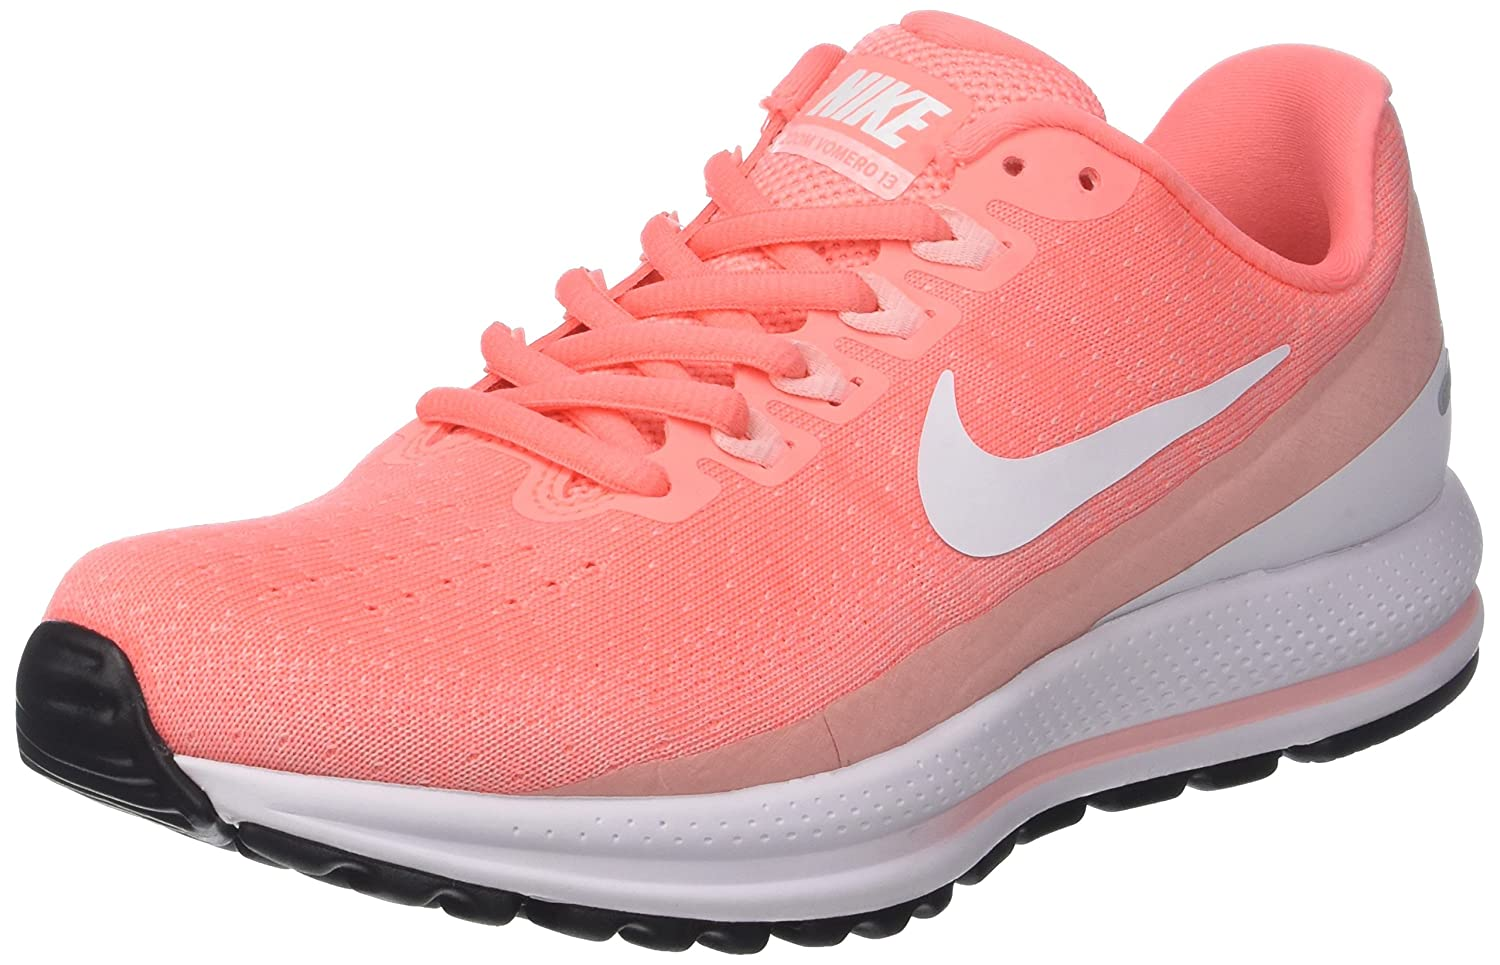 Nike Wmns Air Zoom Vomero 13, Zapatillas de Running para Mujer 36 EU|Negro (Lt Atomic Pink/White/Bleached Coral 600)